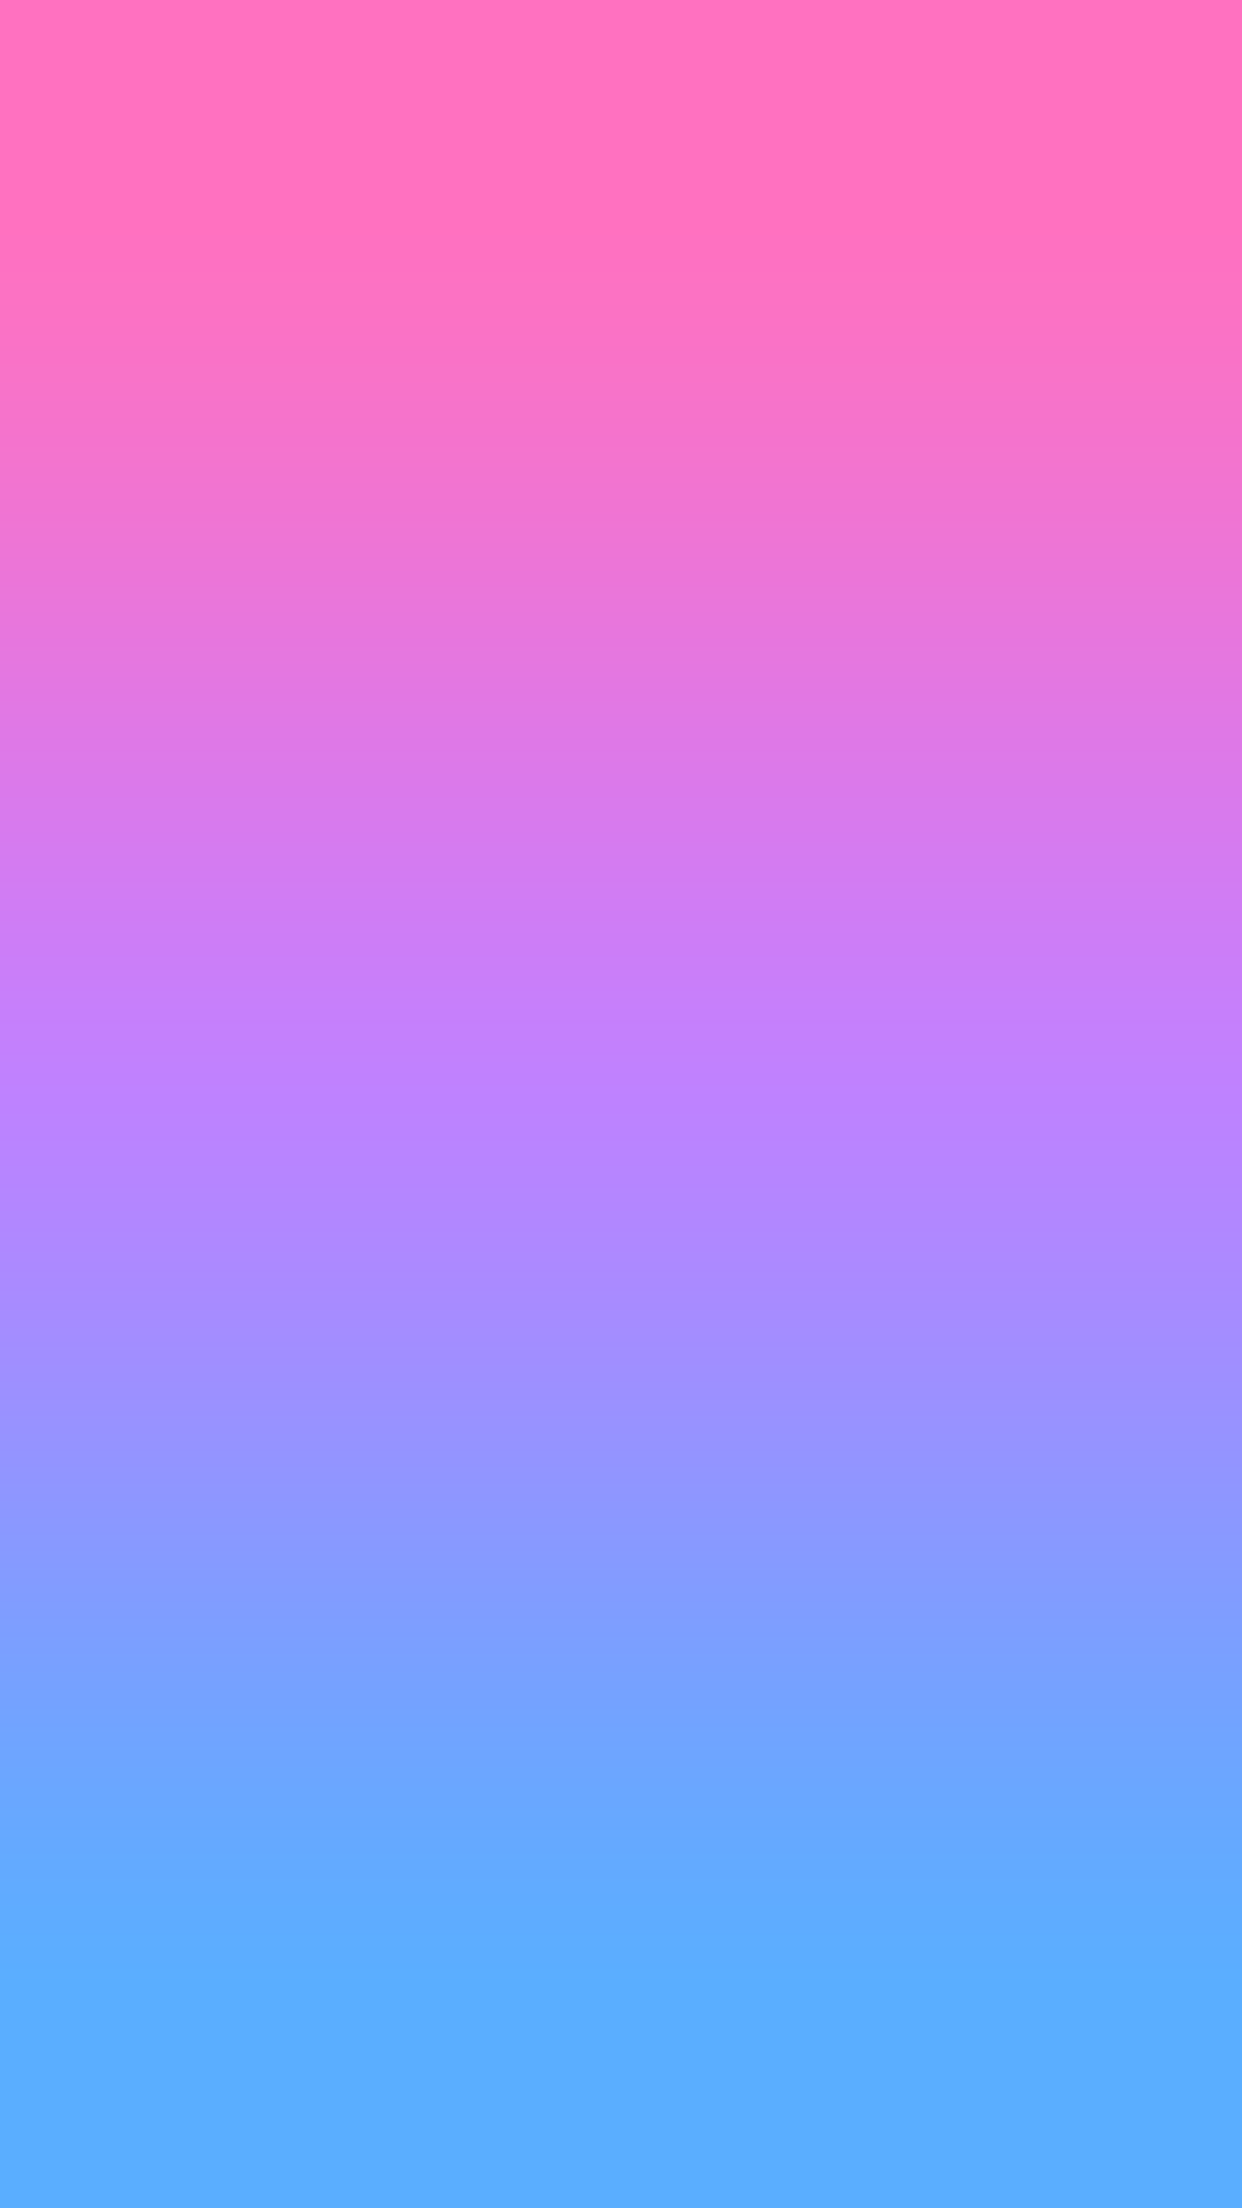 pink, purple, blue, violet, gradient, ombre, wallpaper